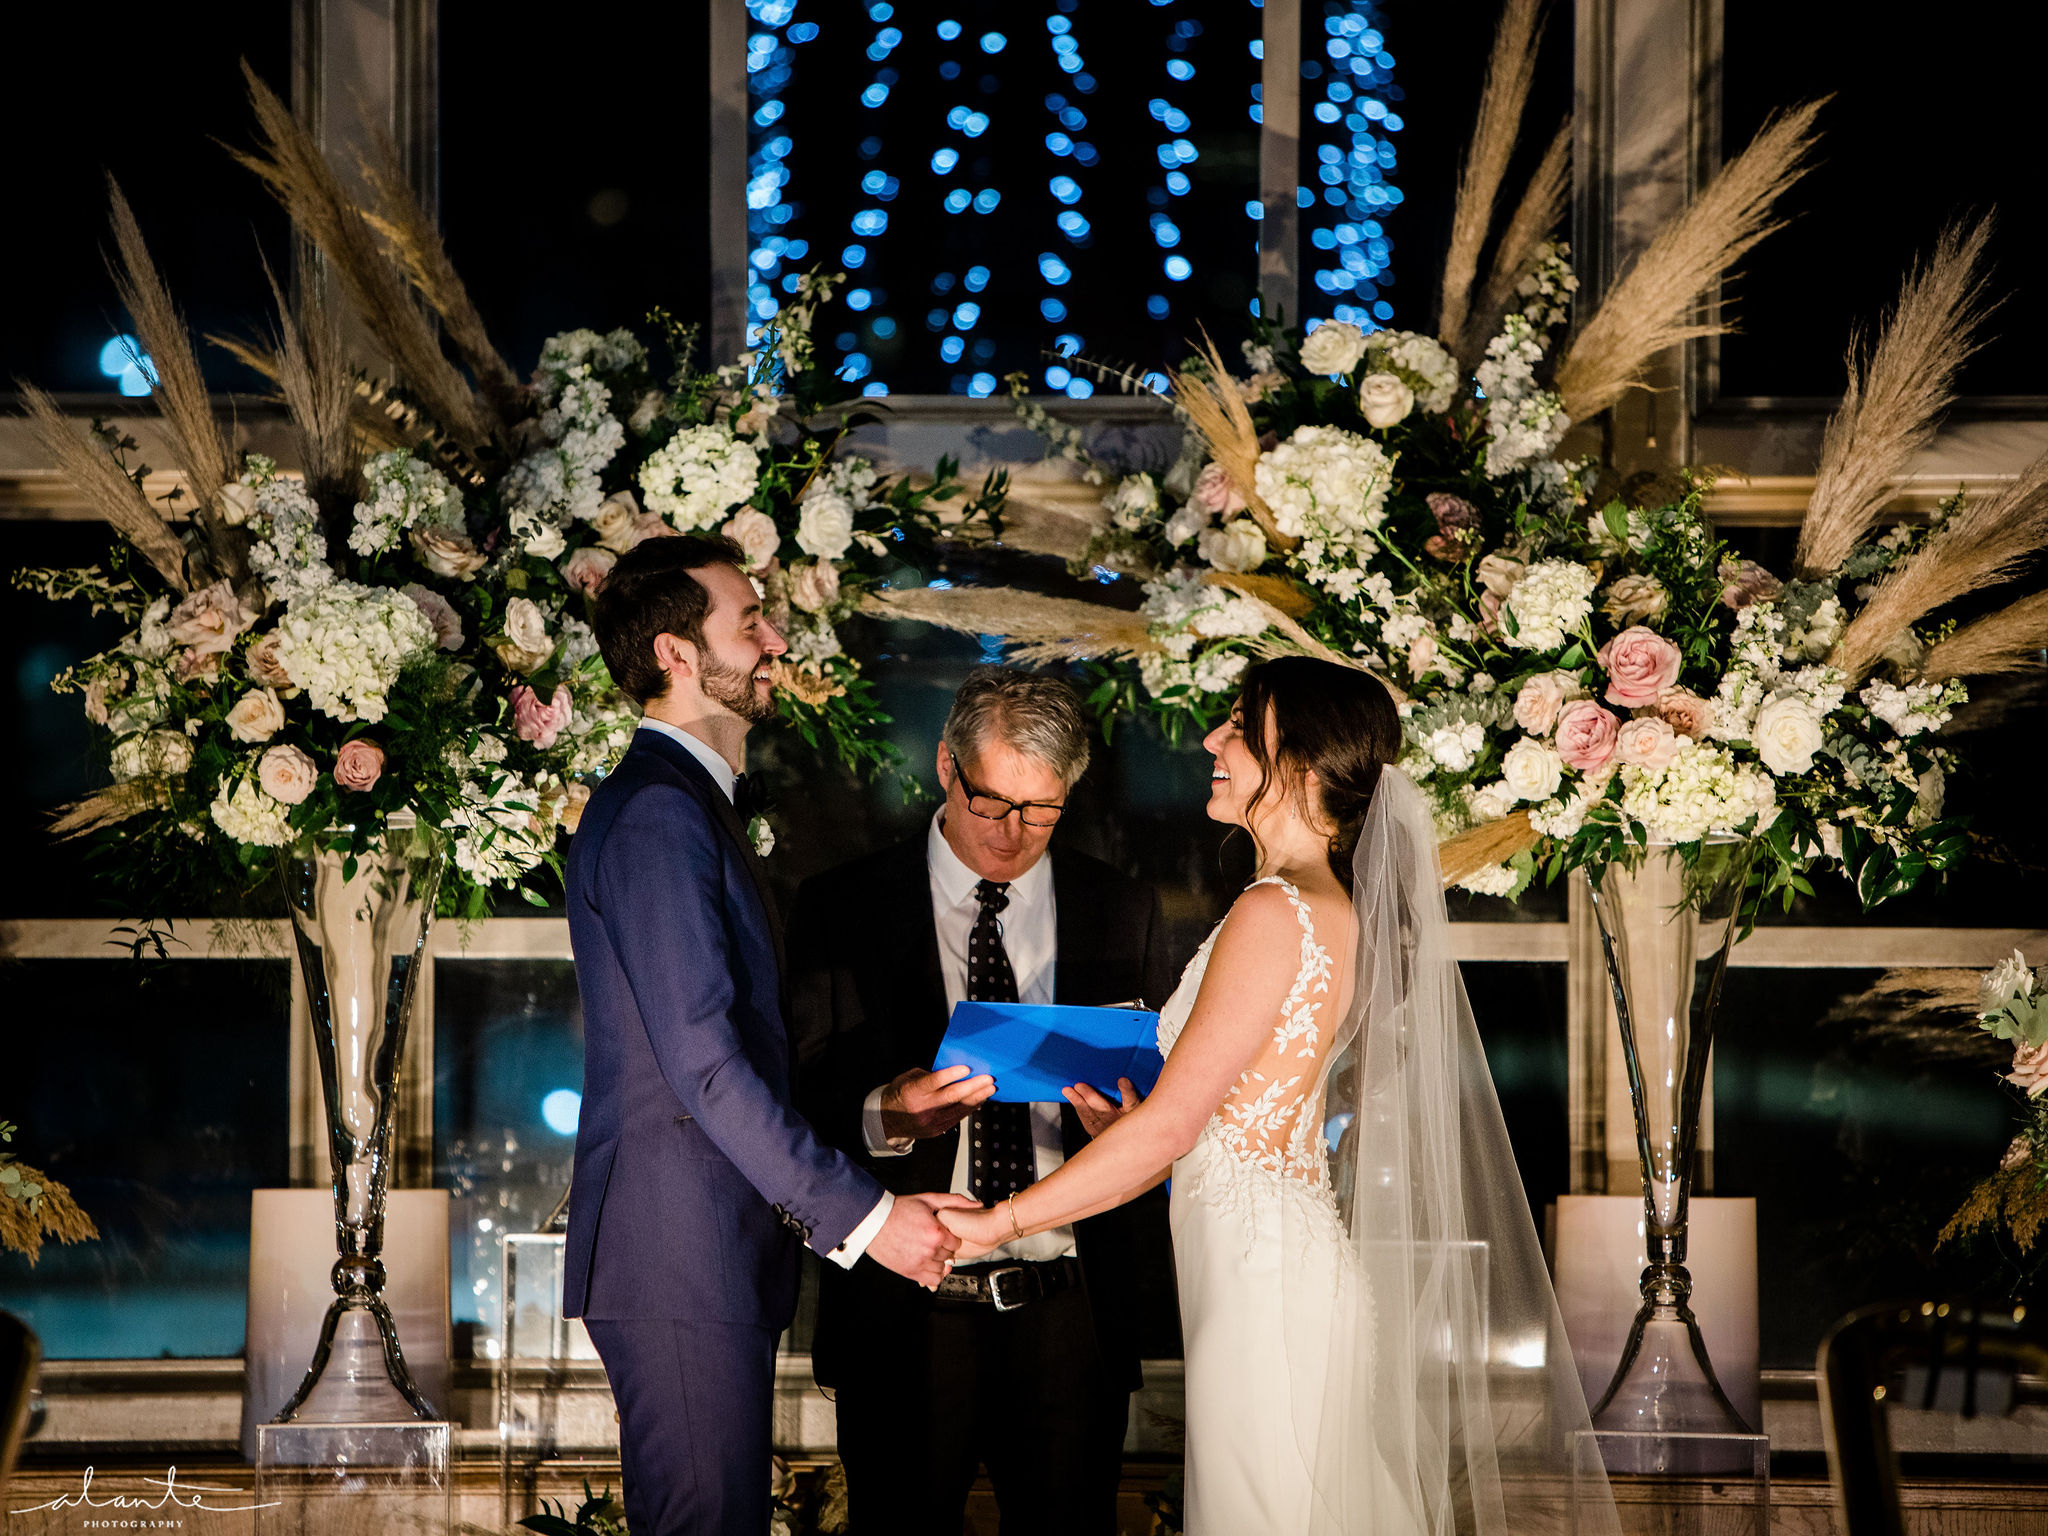 Pampas grass wedding ceremony, tall floral arrangements in white and blush frame the couple.